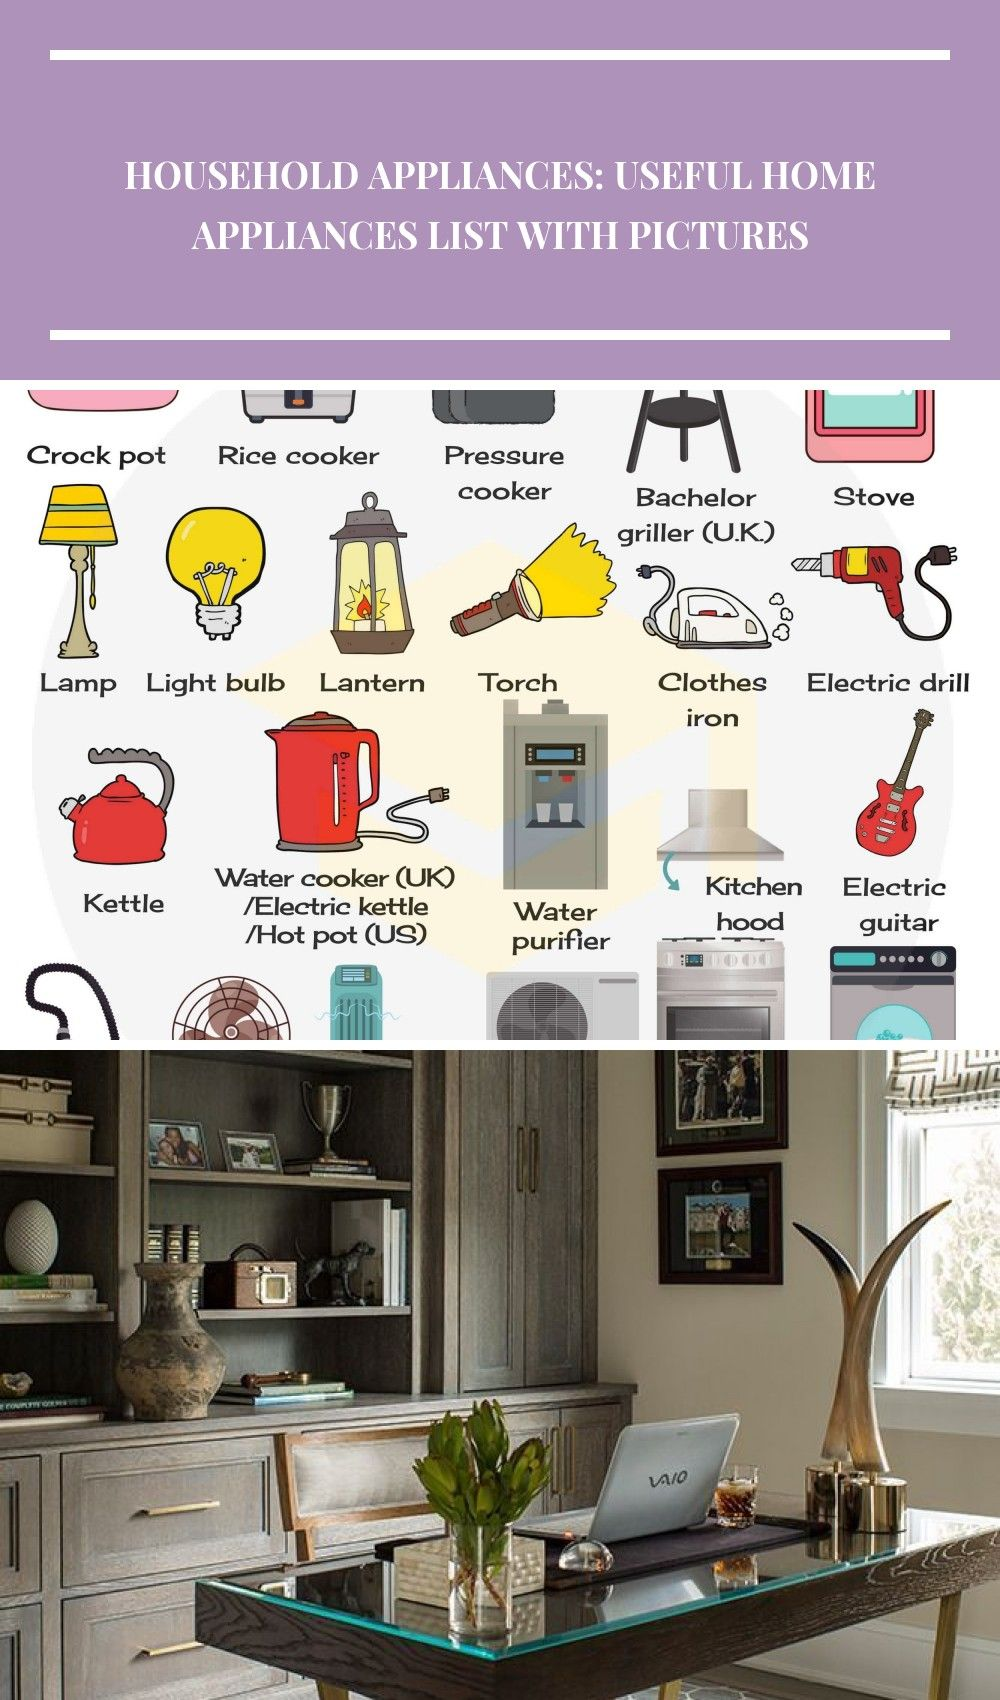 Household Appliances Vocabulary List Of Home Appliances Home Schooling Ideas Household Appliances Useful Hom Household Appliances Home Appliances Uk Kitchen